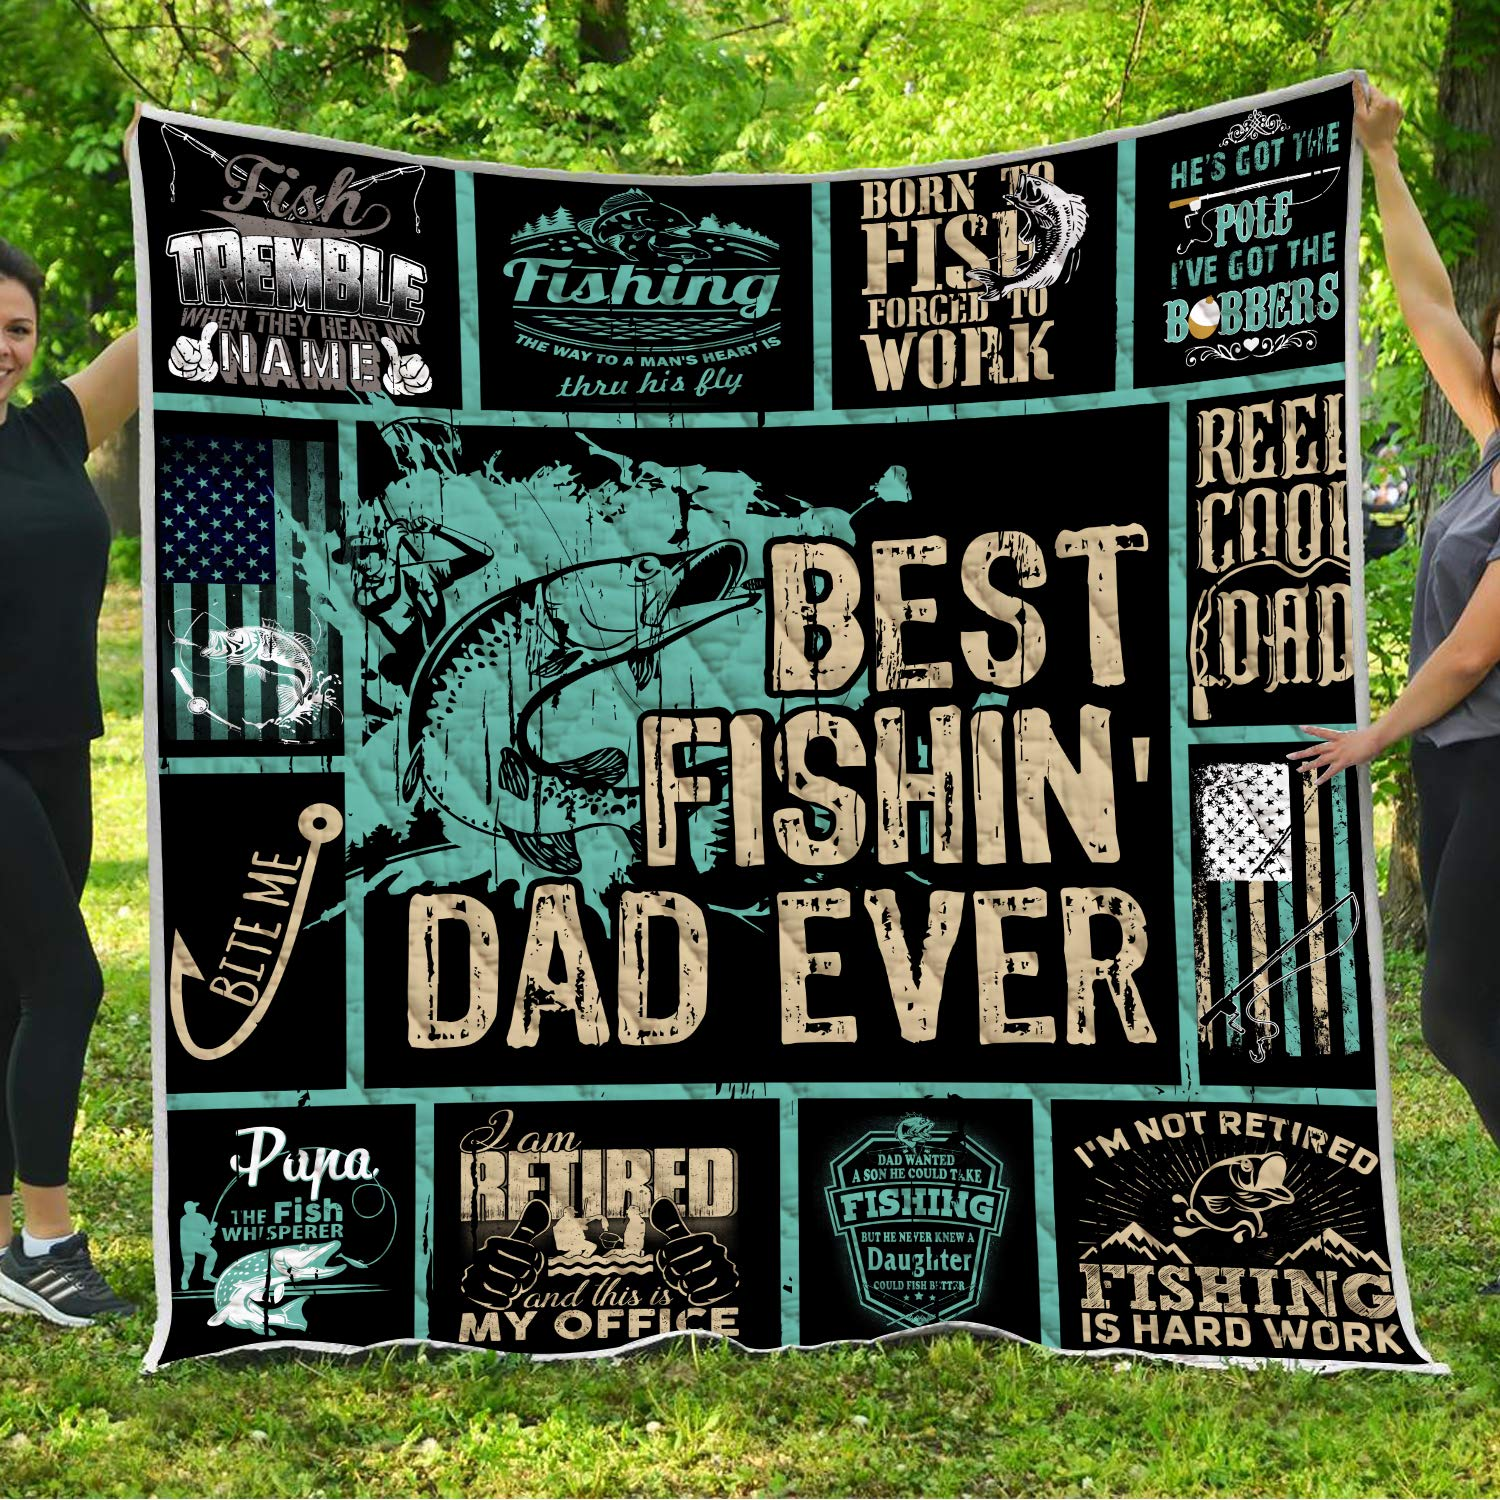 Best Fishing Dad Ever Quilt Pattern Blanket Comforters with Reversible Cotton King Queen Full Twin Size Reel Cool Dad Birthday Christmas Quilted Gifts for Daddy Father Husband Son Daughter Kids Wife by VTH Global